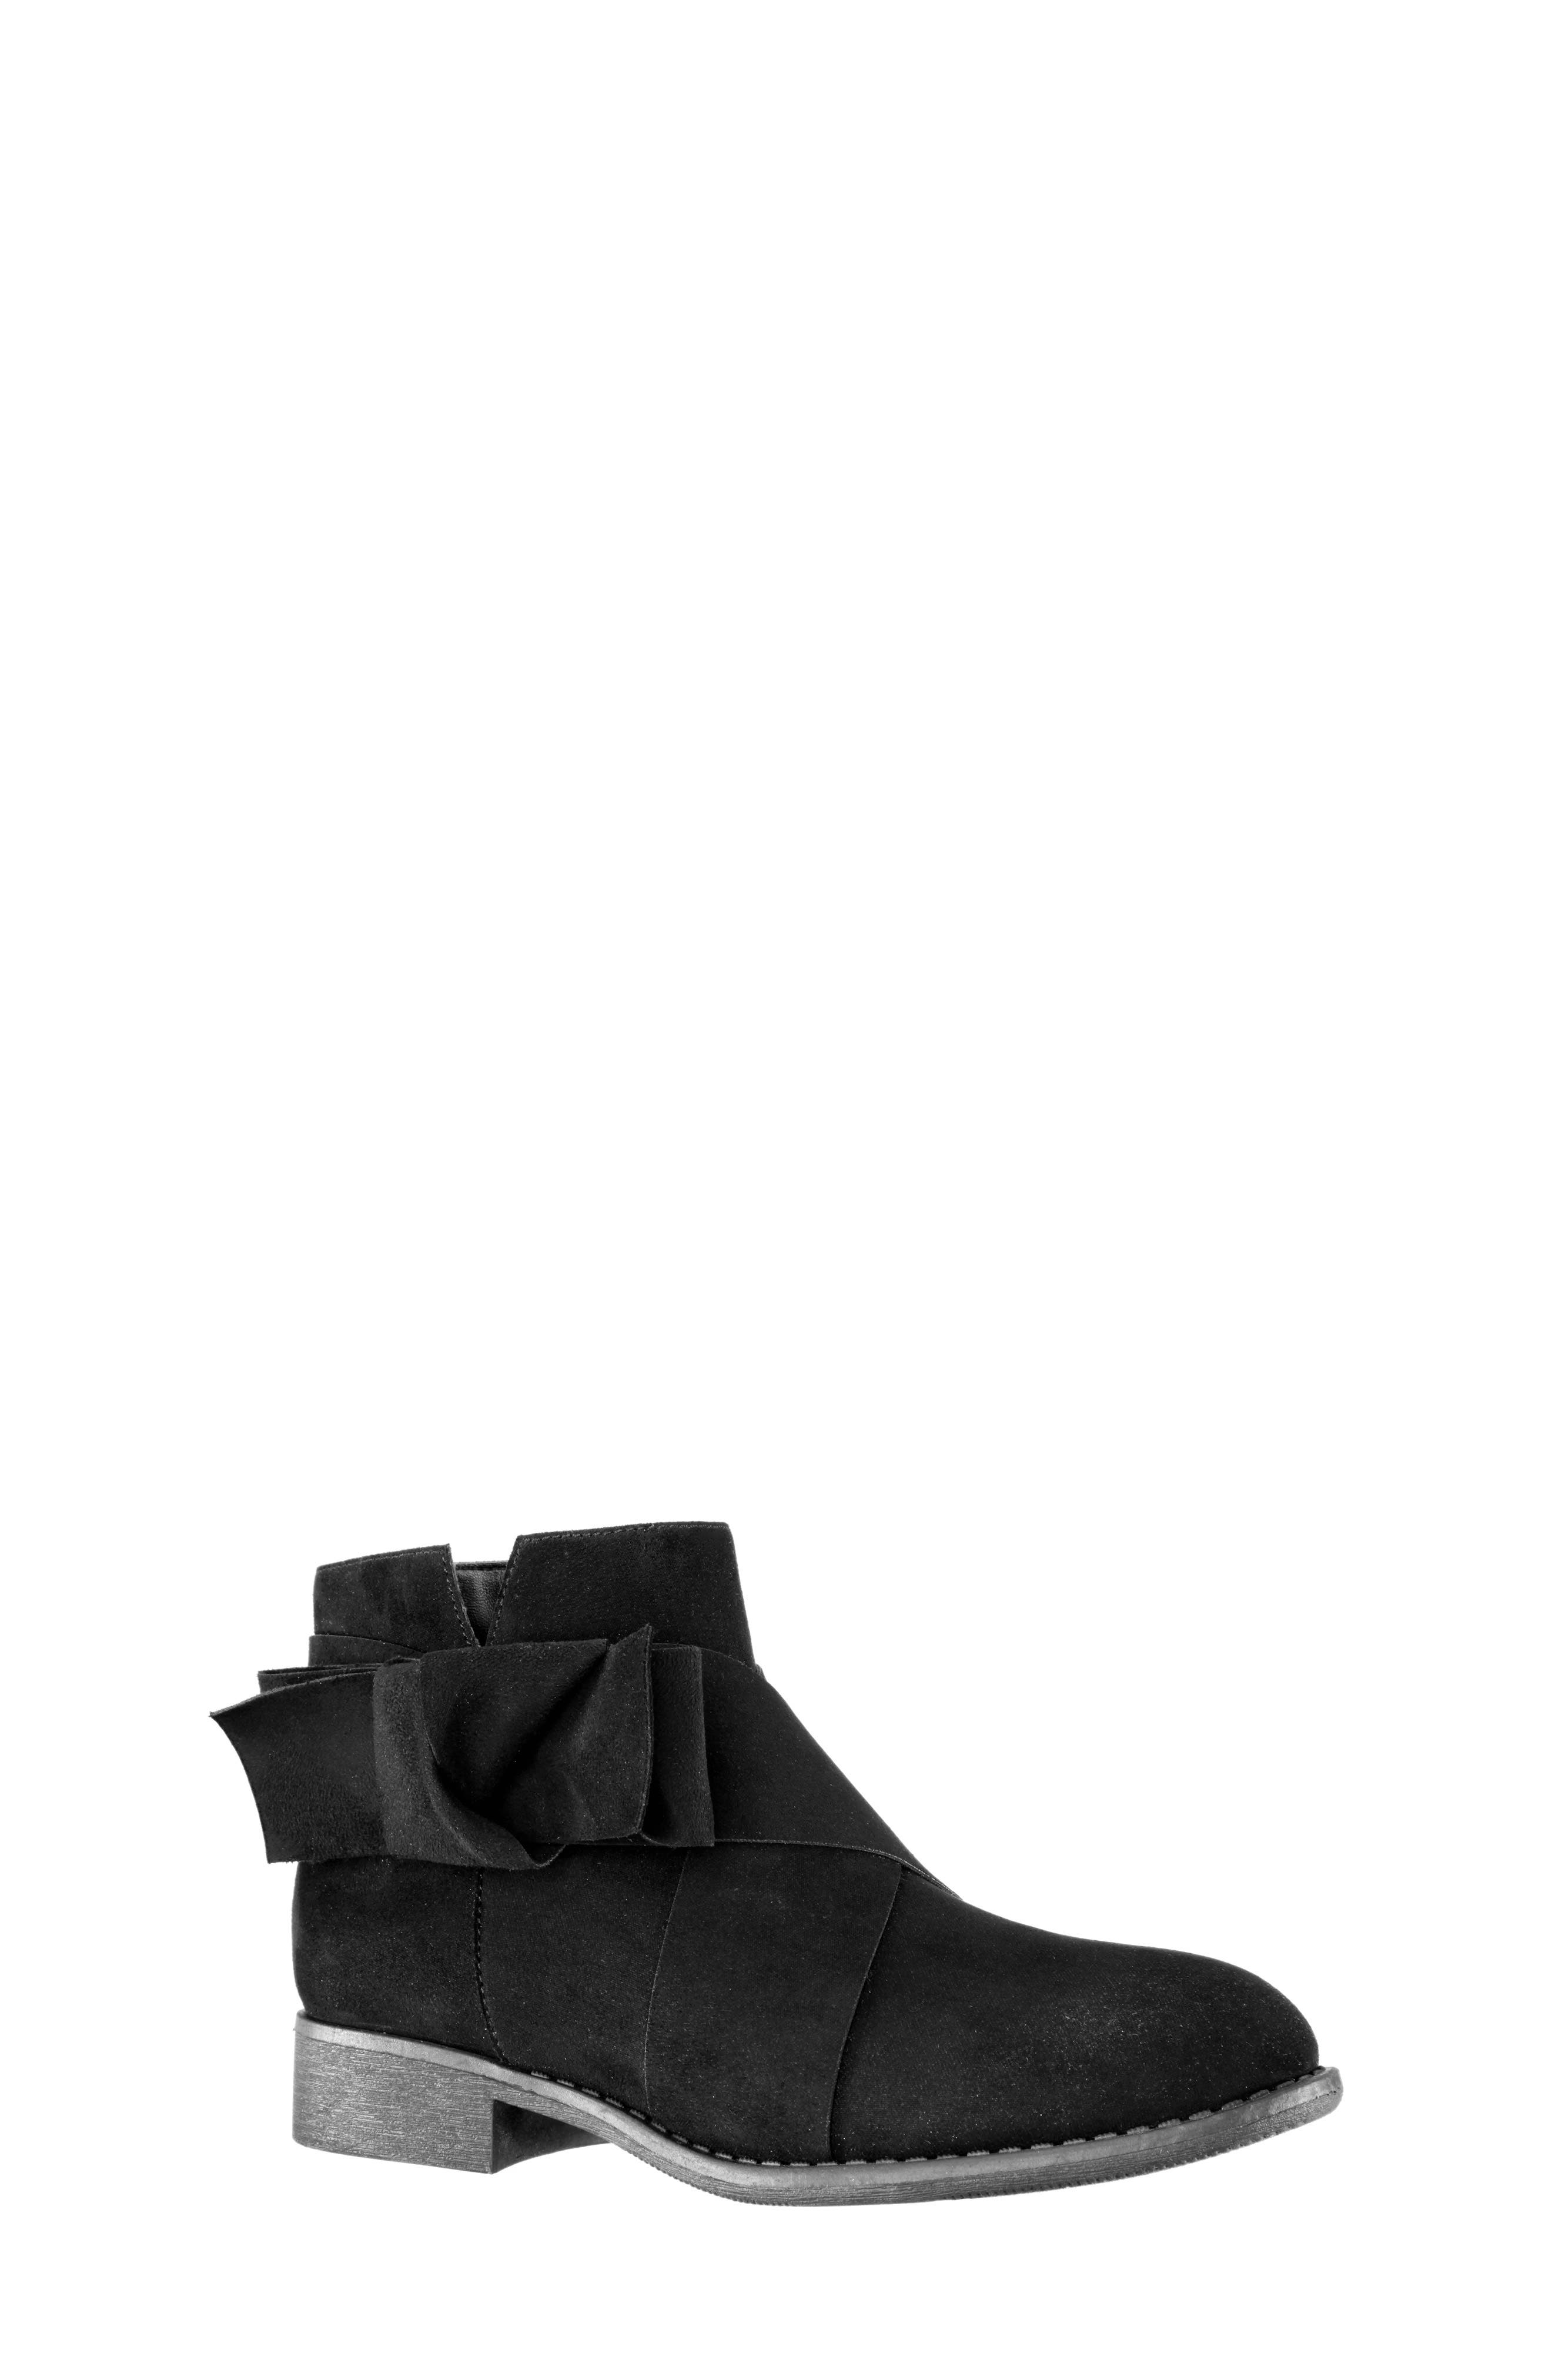 Dollee Bootie,                         Main,                         color, BLACK MICRO SUEDE